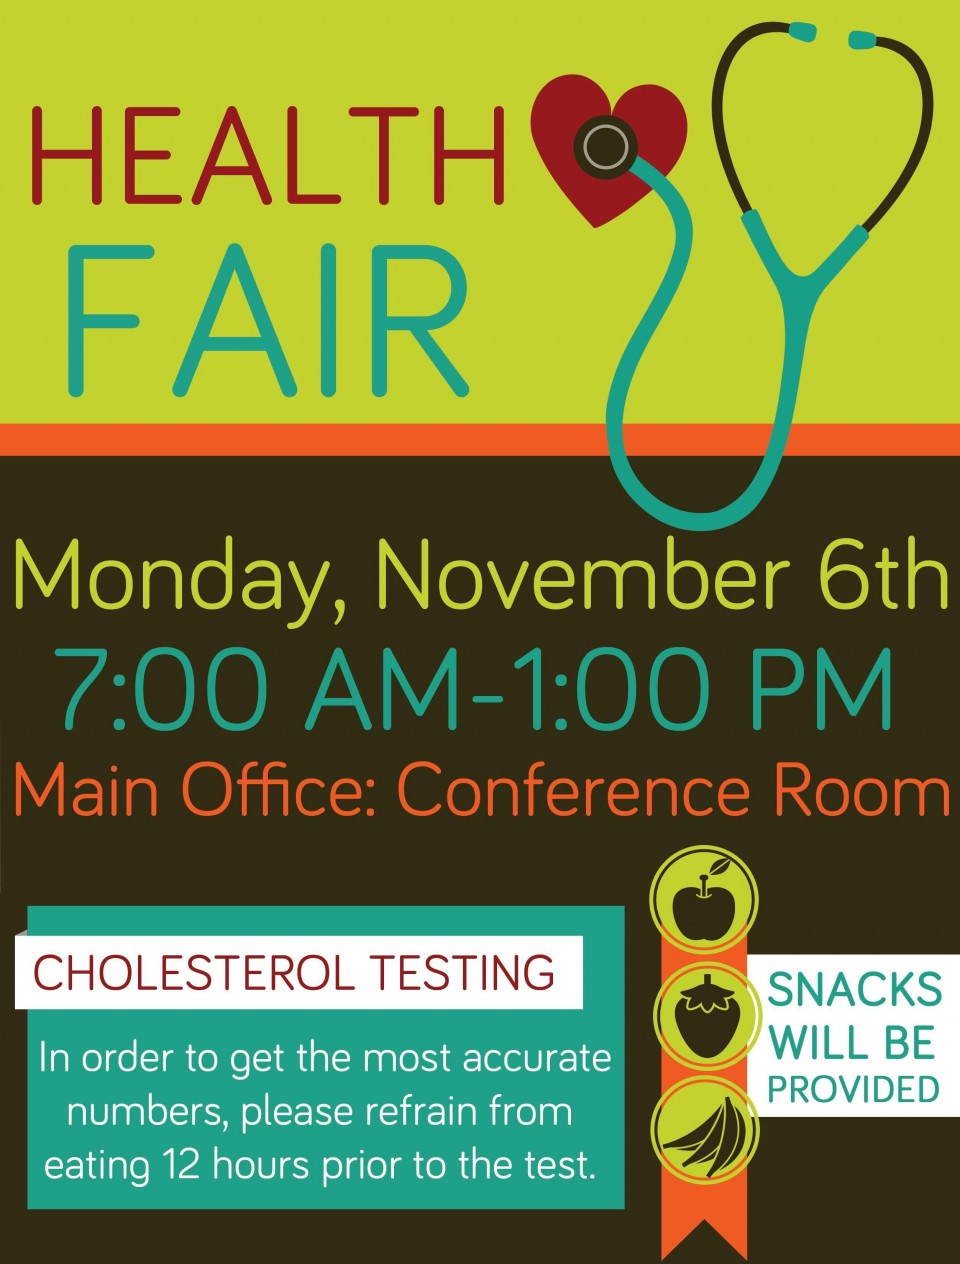 009 Fascinating Health Fair Flyer Template Highest Quality  And Wellnes Word960